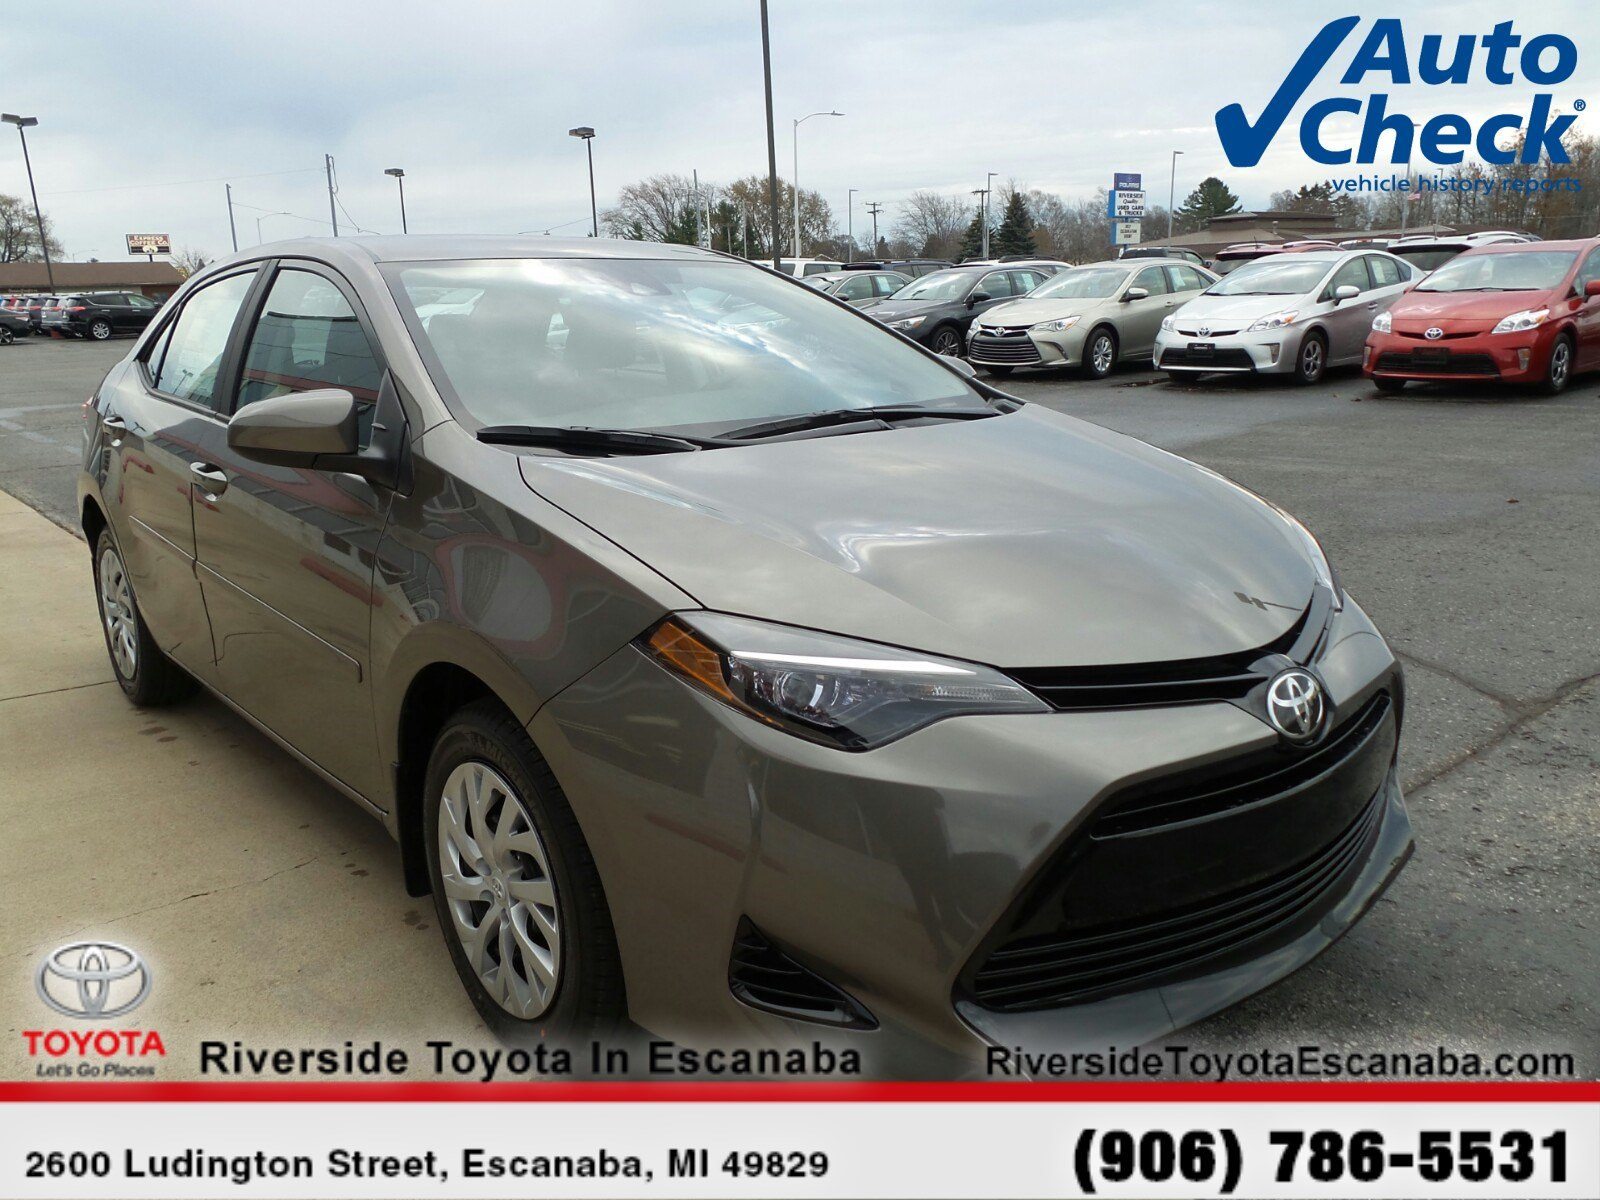 New Featured Vehicles Riverside Toyota In Escanaba